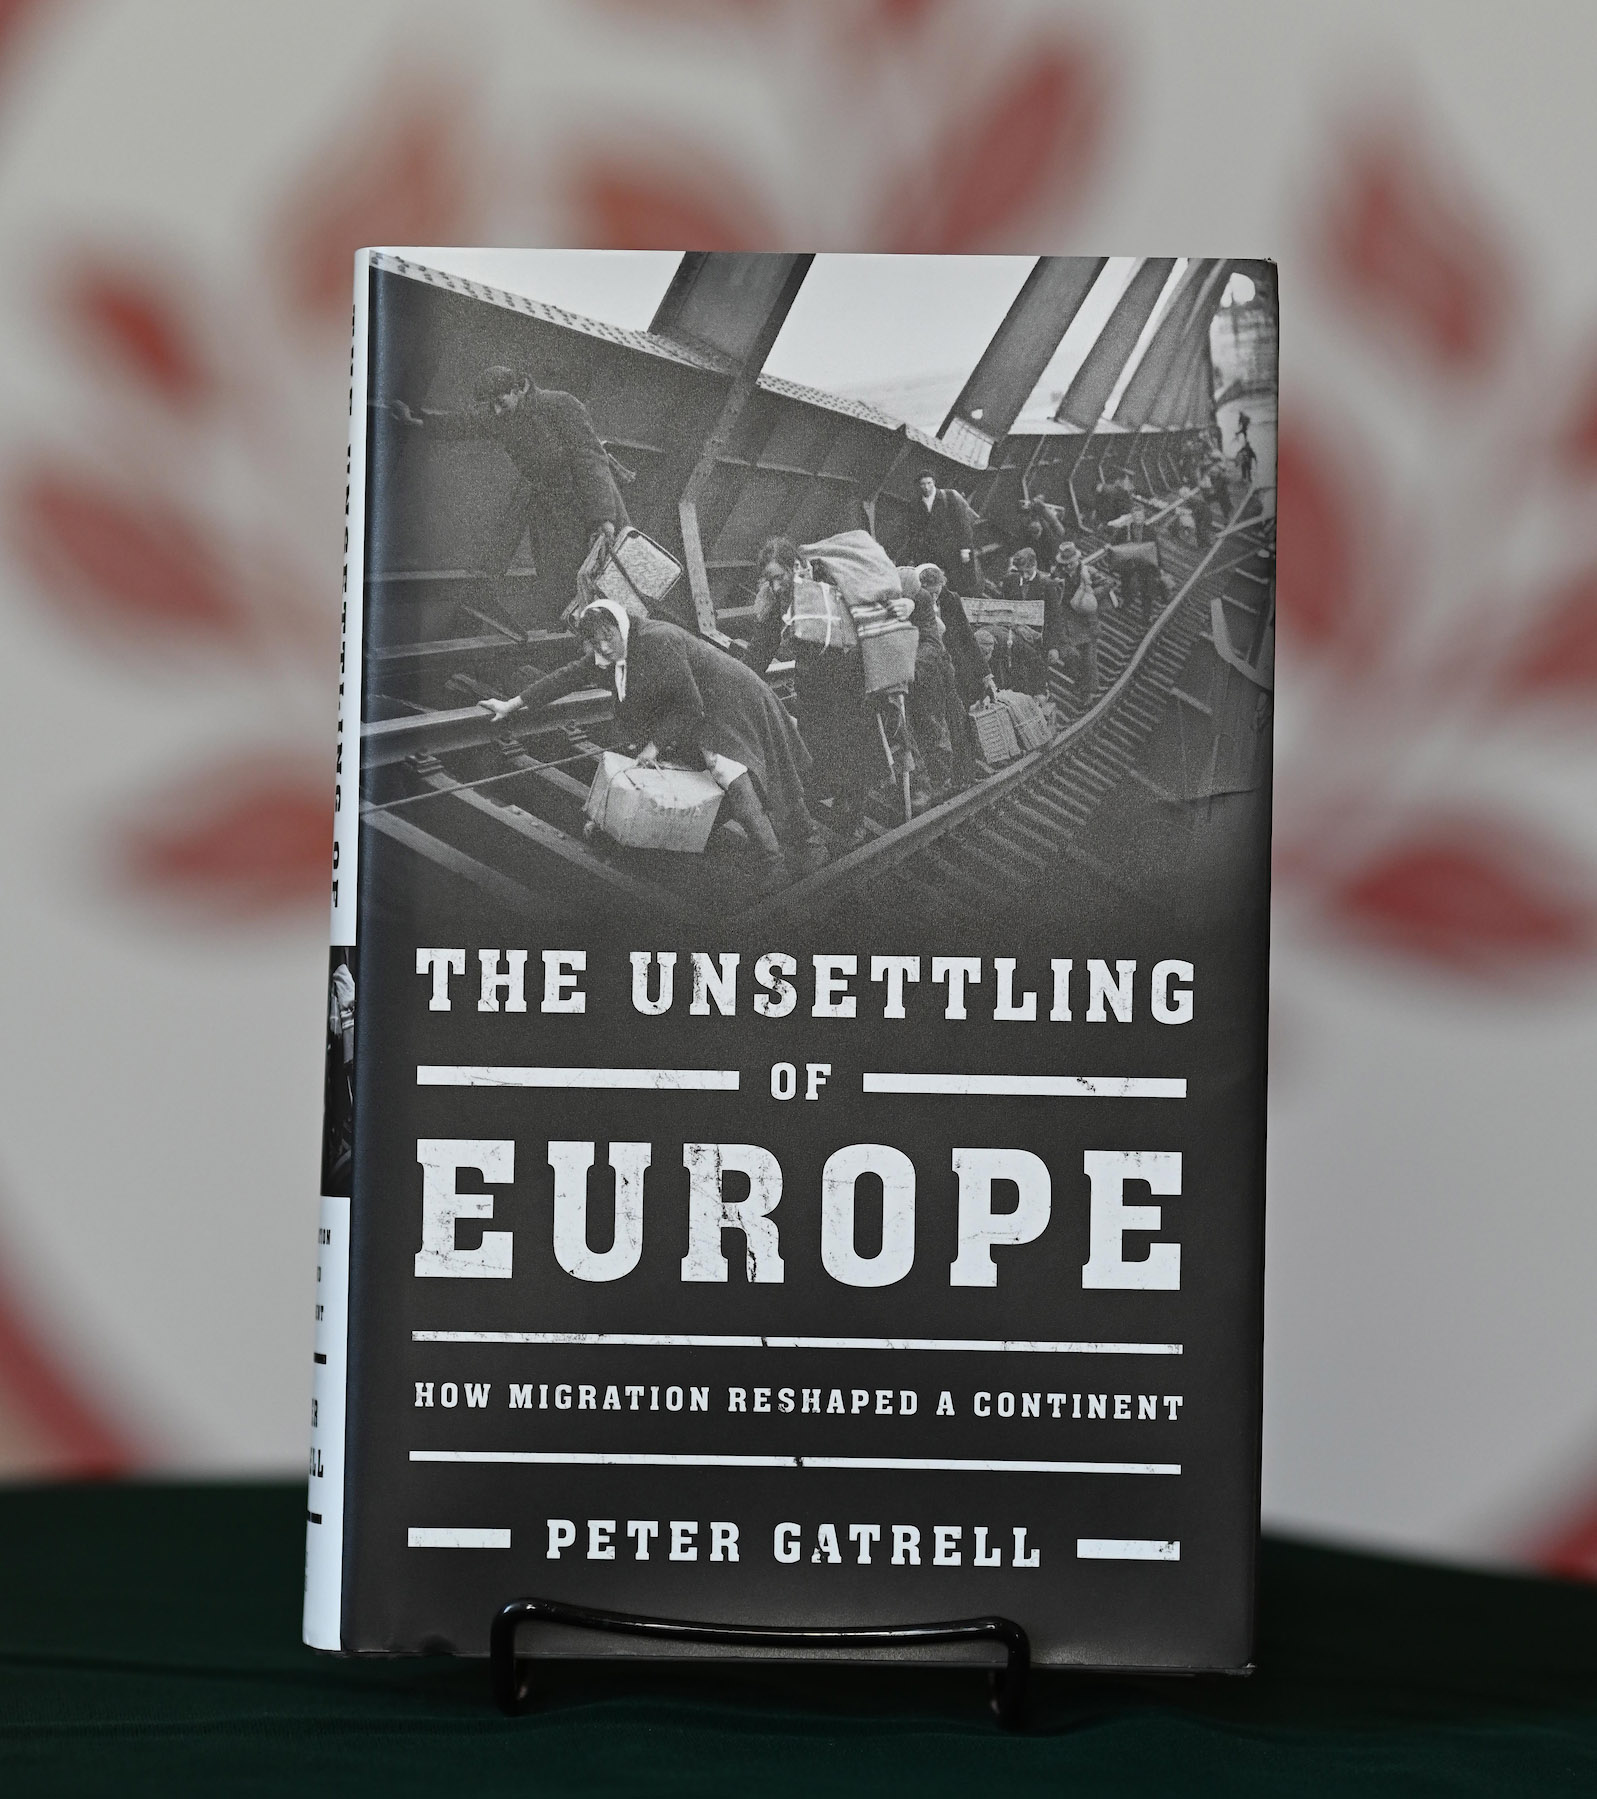 photo of the book the unsettling of europe displayed on a table